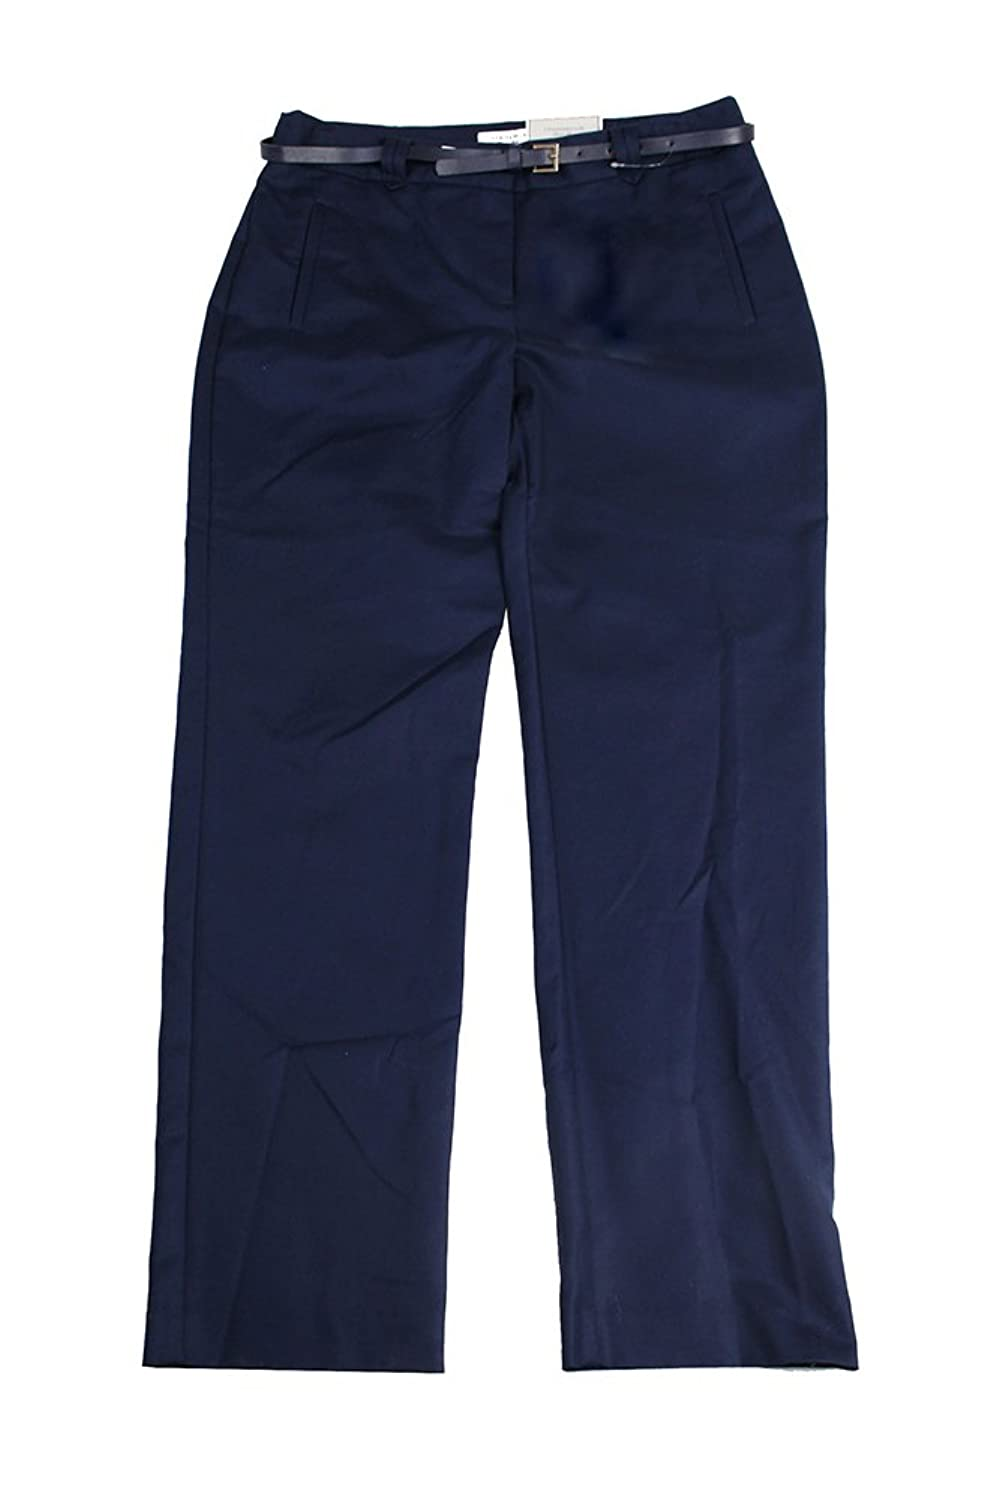 Charter Club Intrepid Blue Straight-Leg Belted Ankle Pants